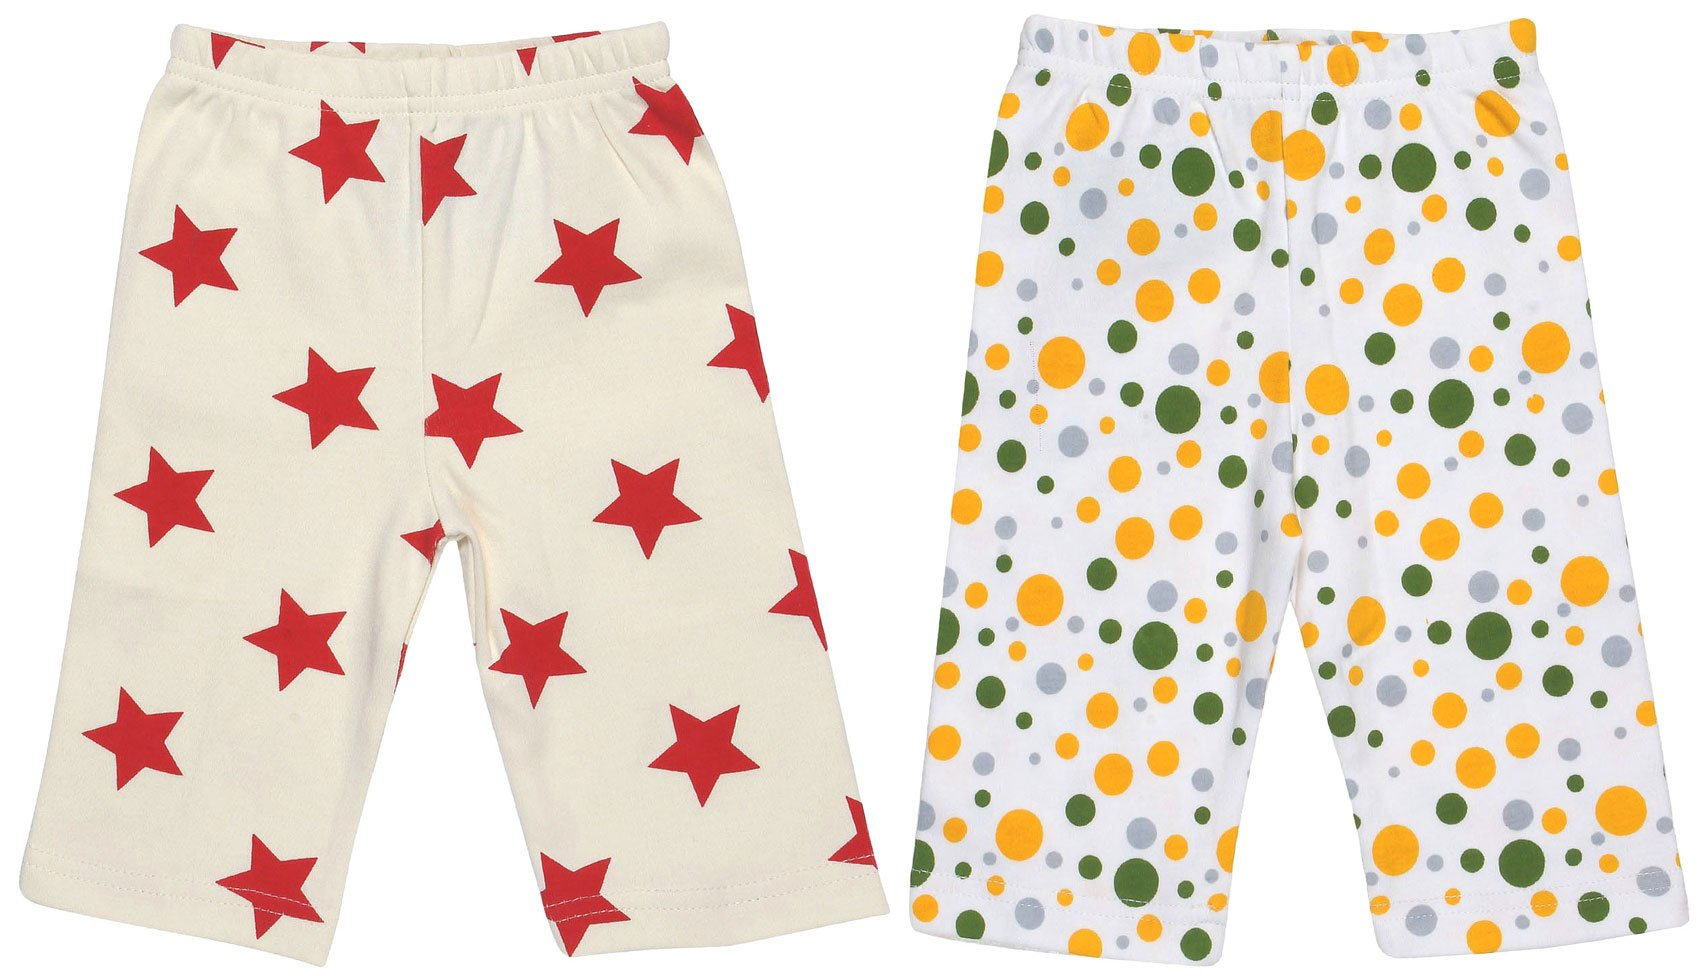 Maple Clothing Organic Cotton Baby Pants GOTS (2 Pack, Star/Dot, 18-24m)